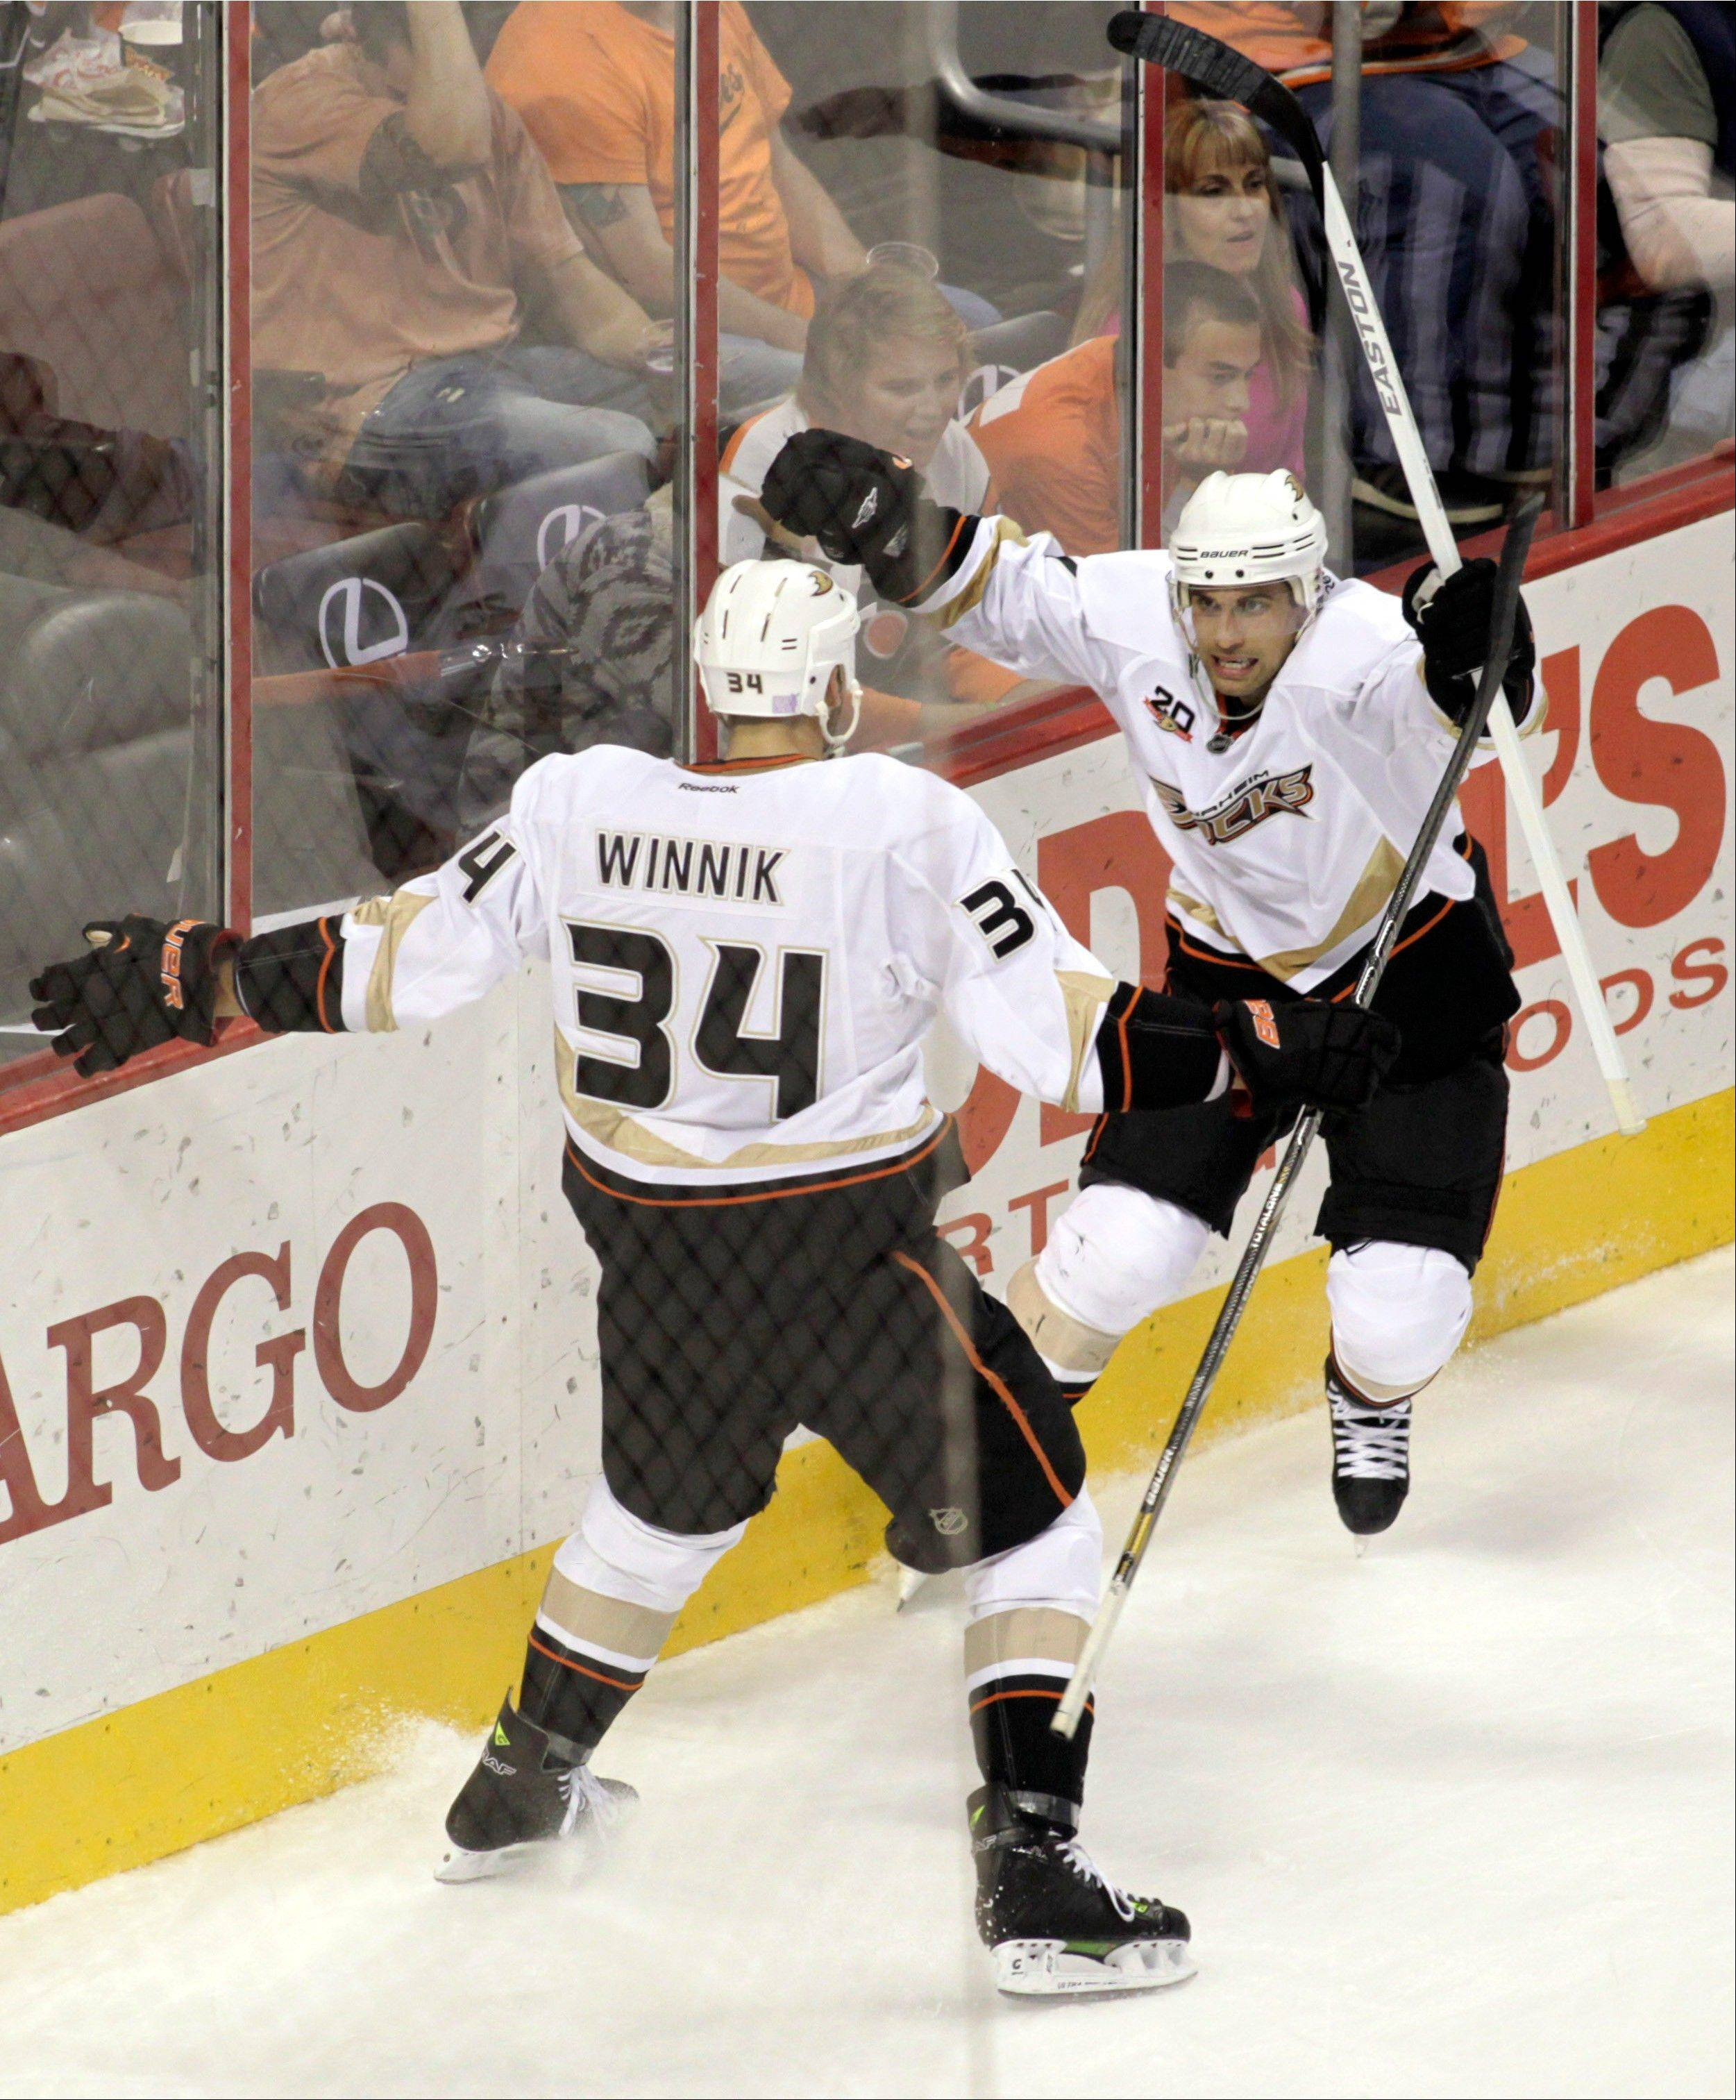 Anaheim Ducks' Andrew Cogliano, right celebrates with Daniel Winnik (34) after scoring against the Philadelphia Flyers in the second period of an NHL hockey game Tuesday in Philadelphia.